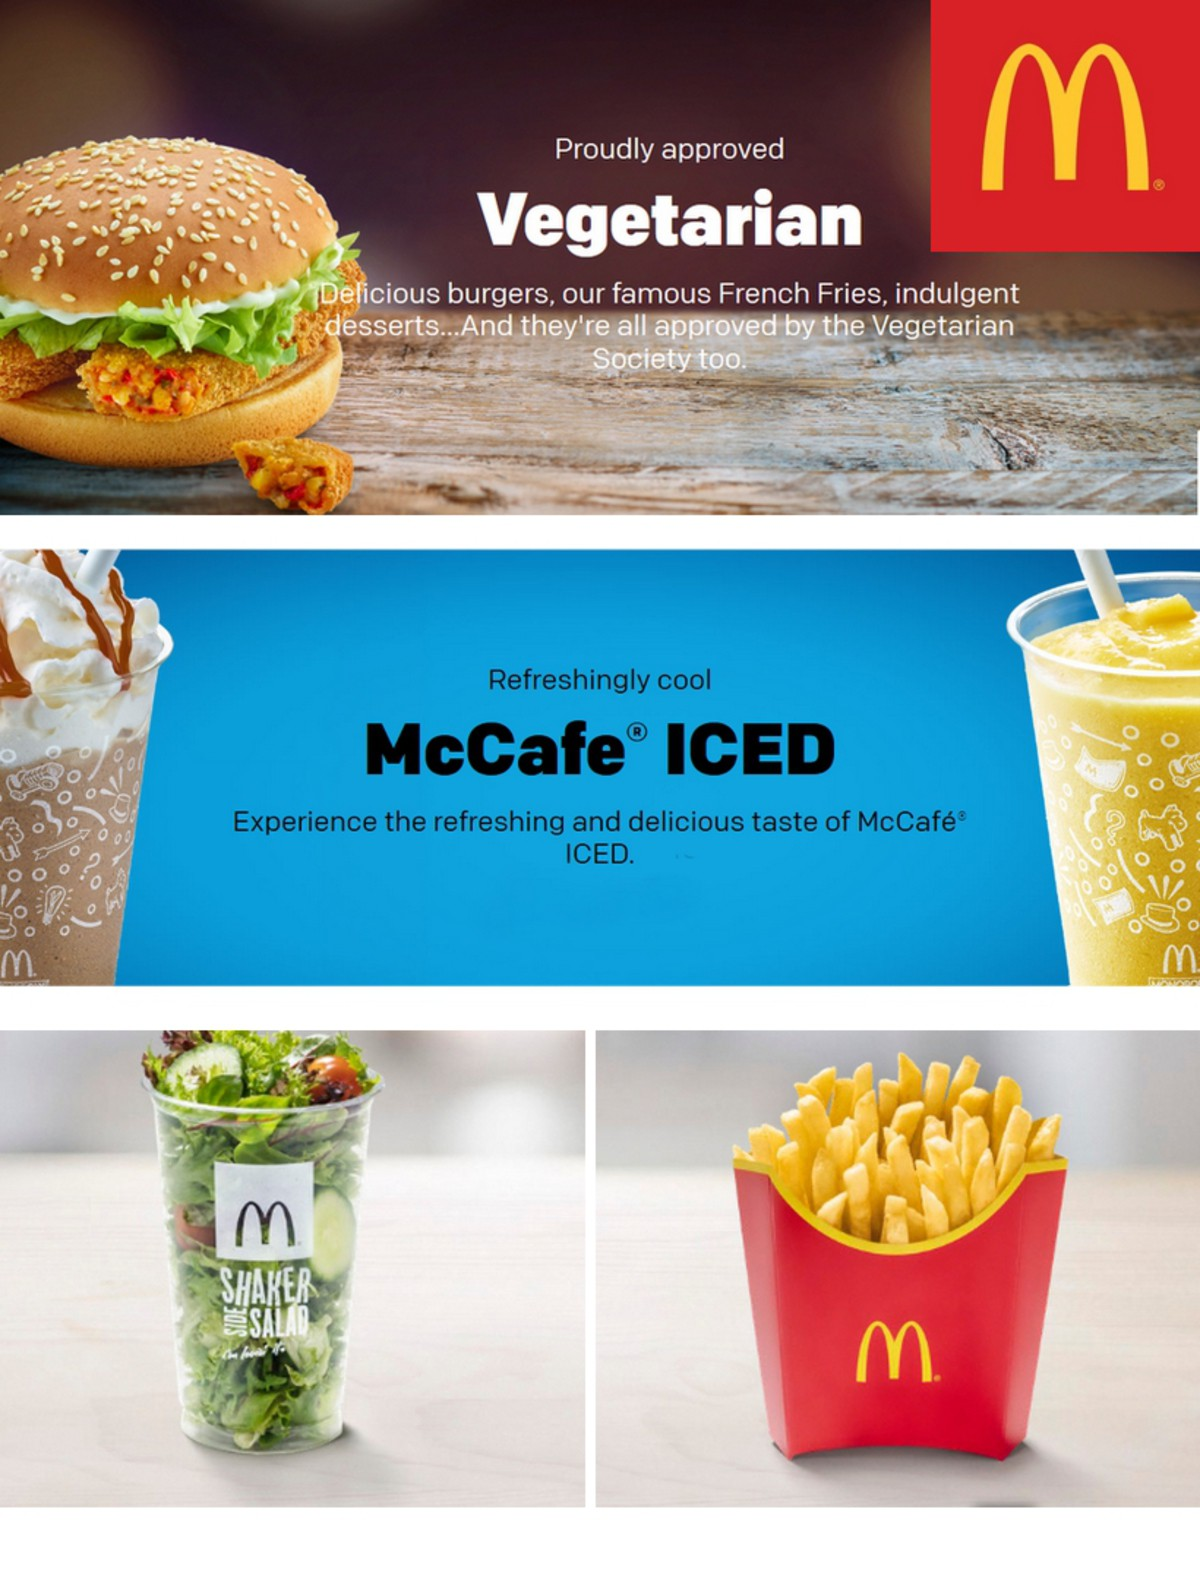 McDonald's Vegetarian Offers from April 1